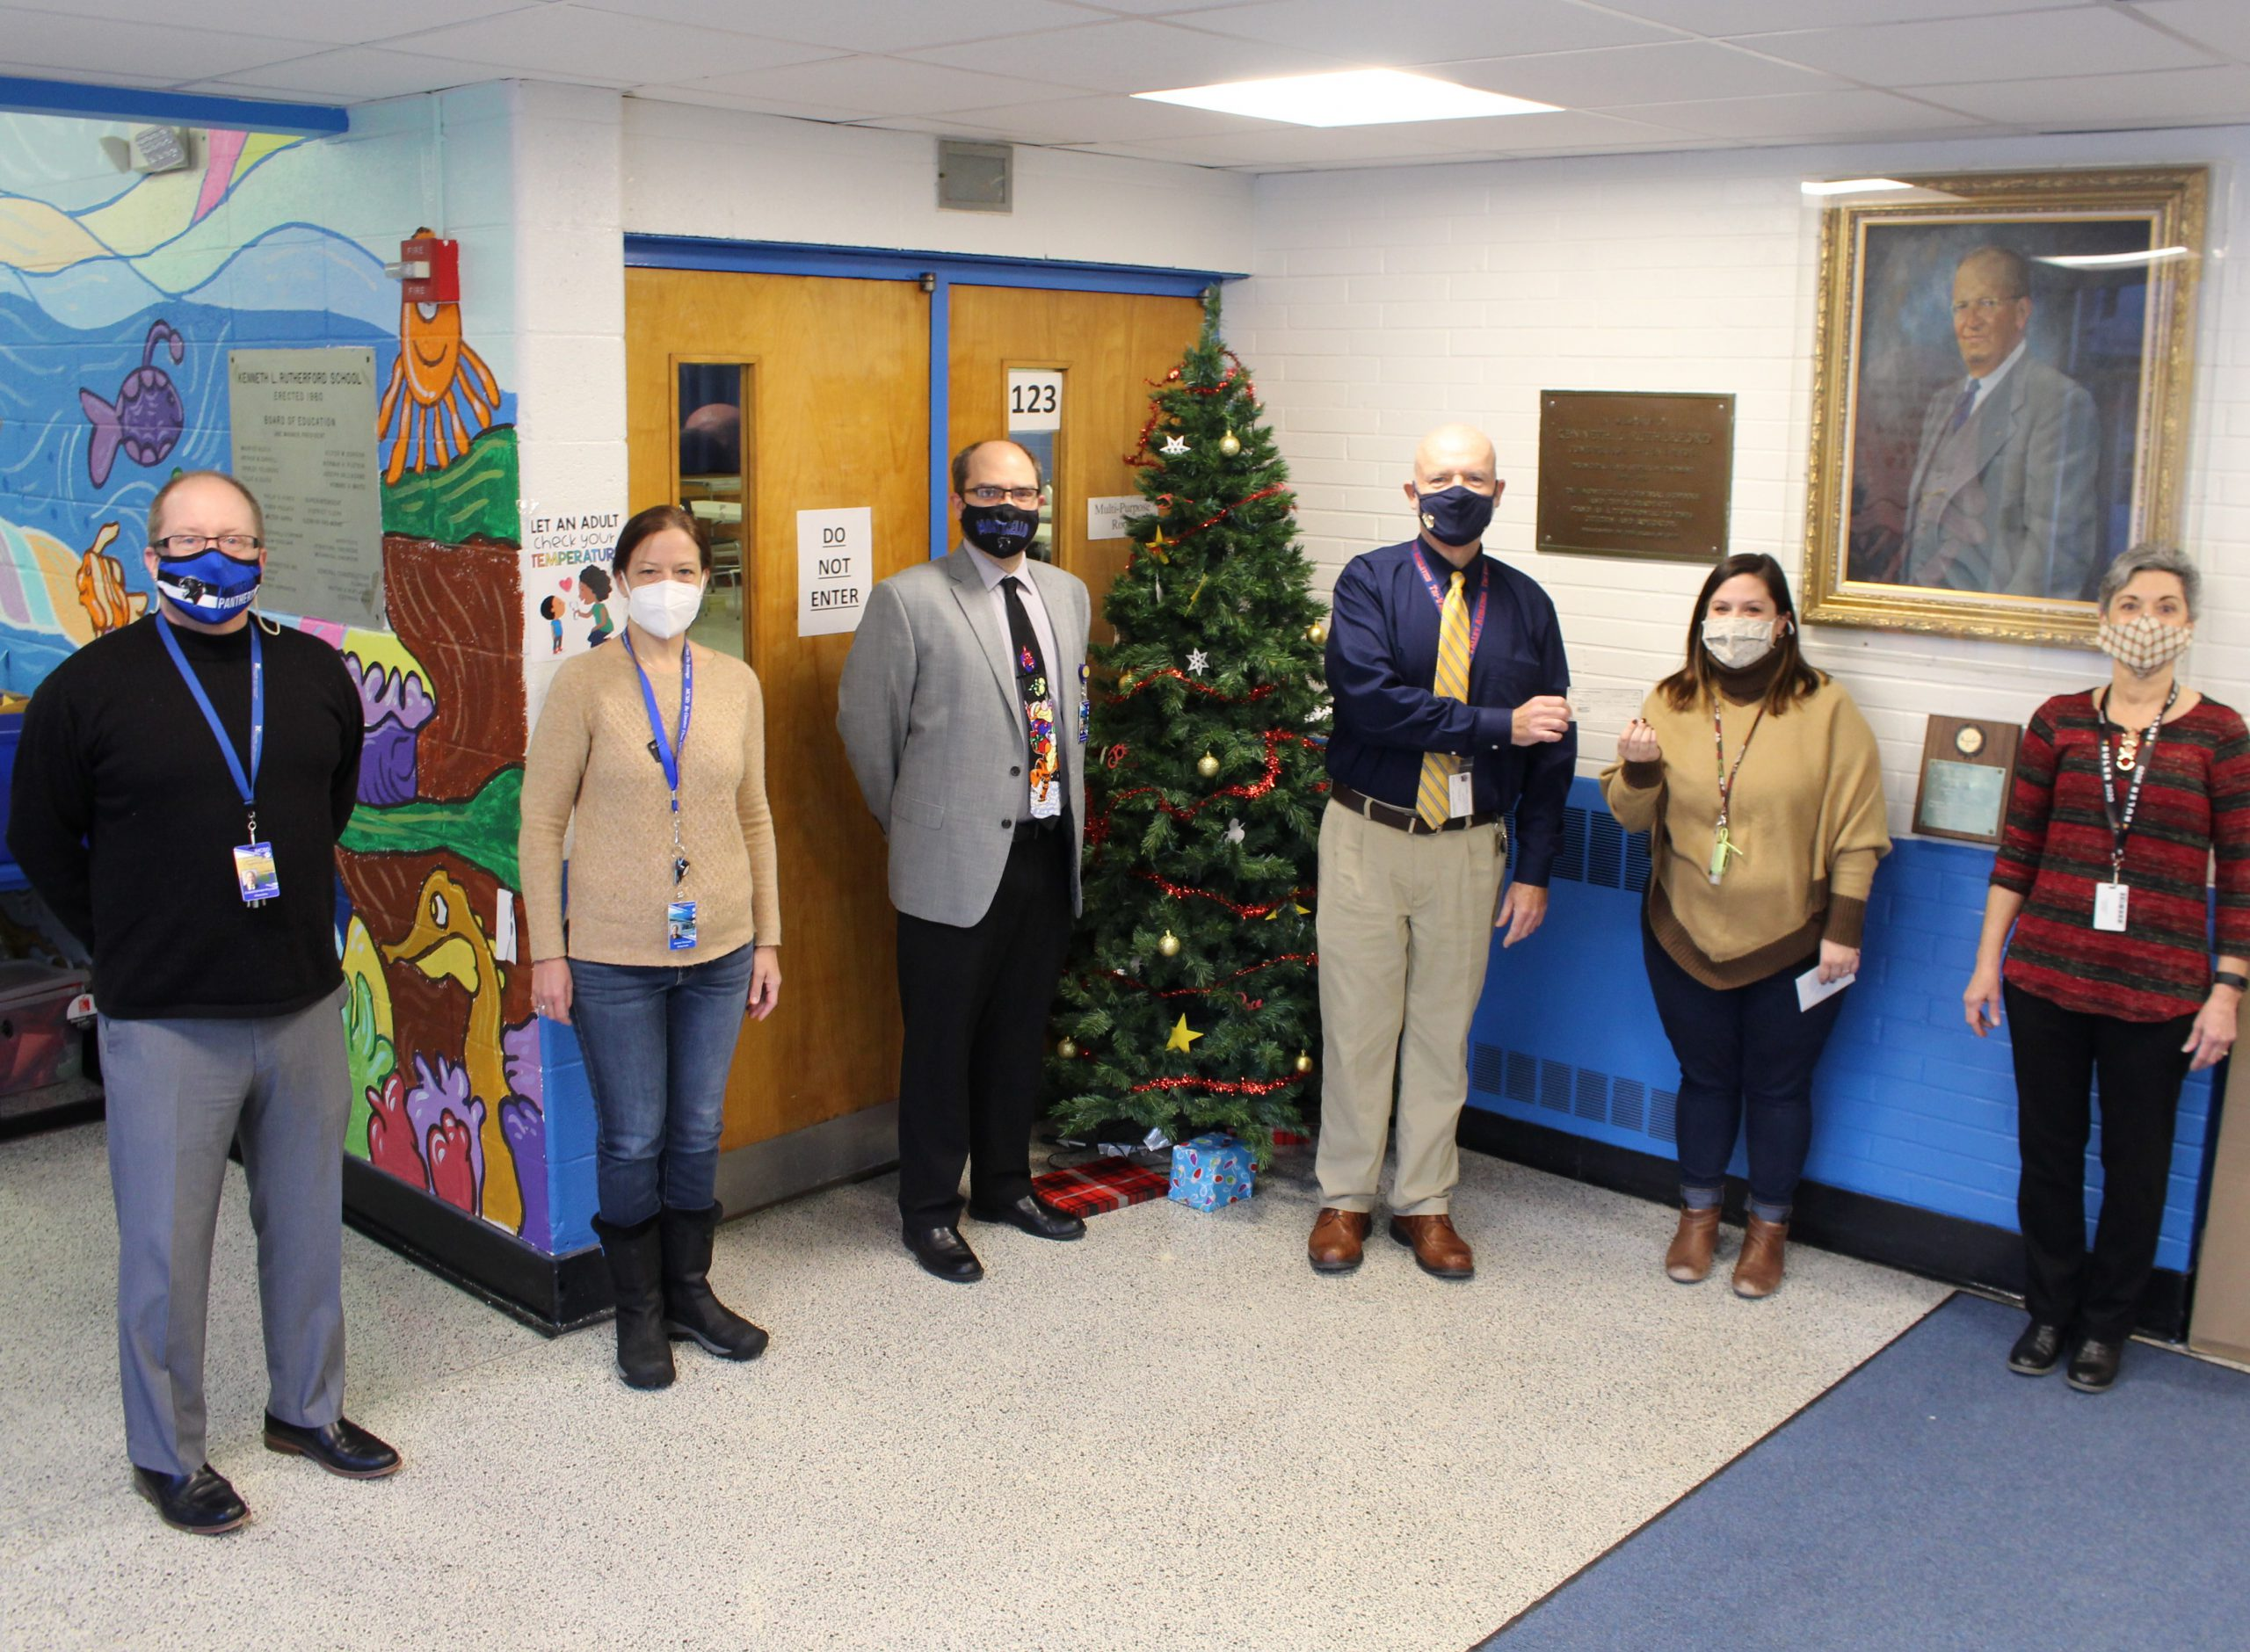 staff members are standing in the school hallway near a Christmas tree. Mike Williams is handing a check for $500 to Sarah Mootz to buy presents for students in need